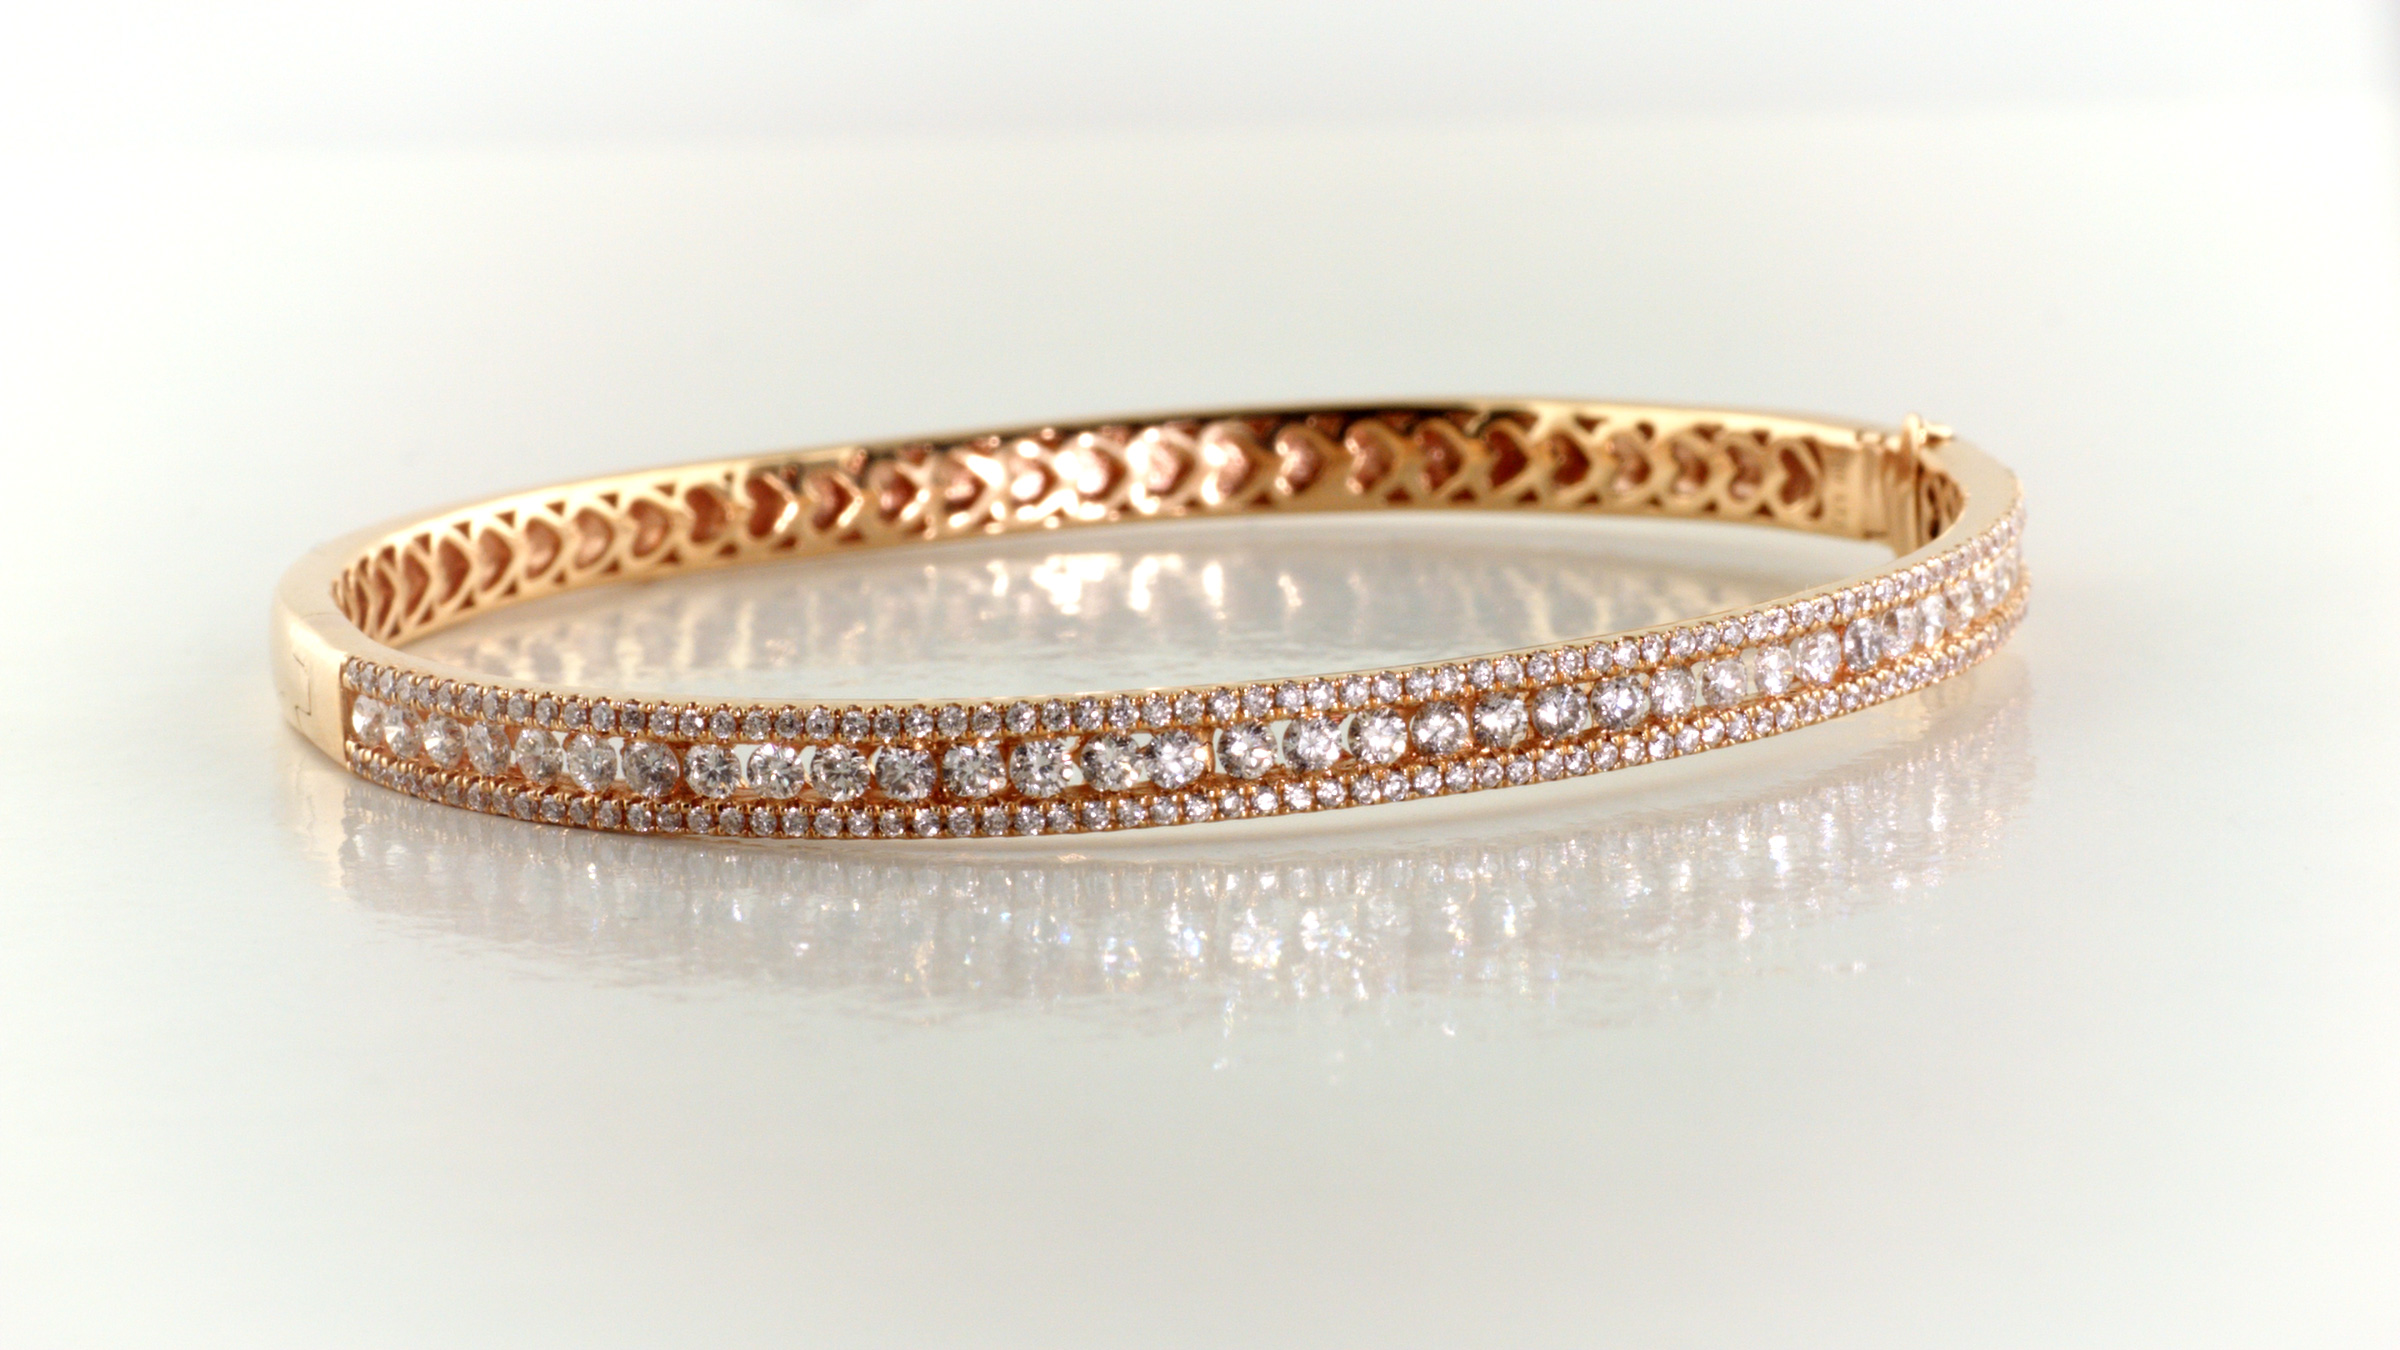 Diamond bangle bracelet in 18K rose gold